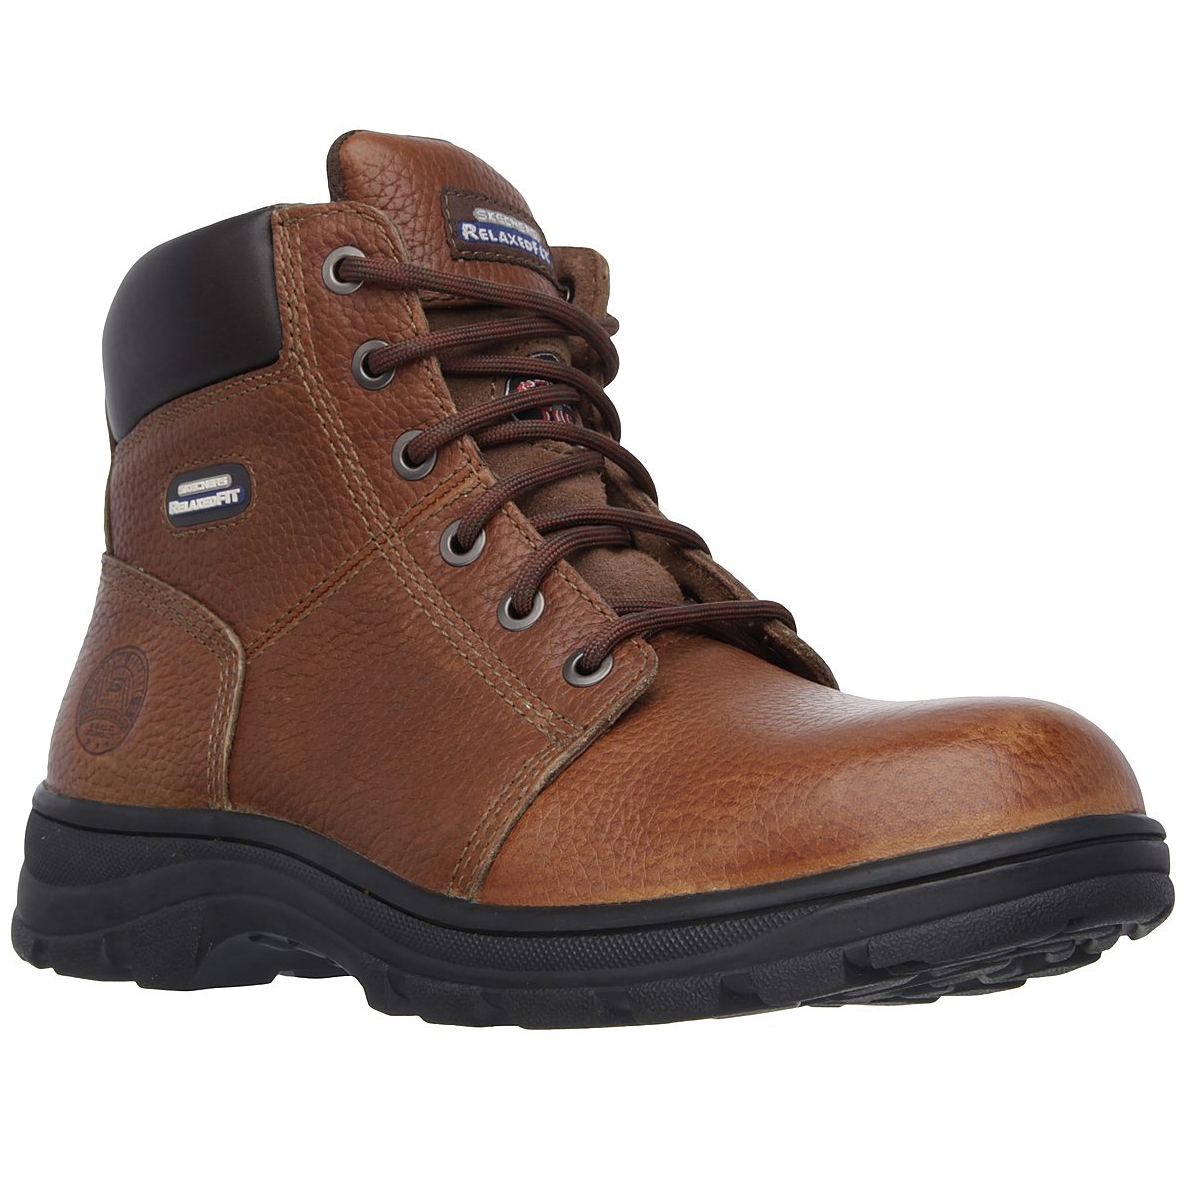 Skechers Men's 6 In. Work: Relaxed Fit - Workshire Steel Toe Work Boots - Brown, 12